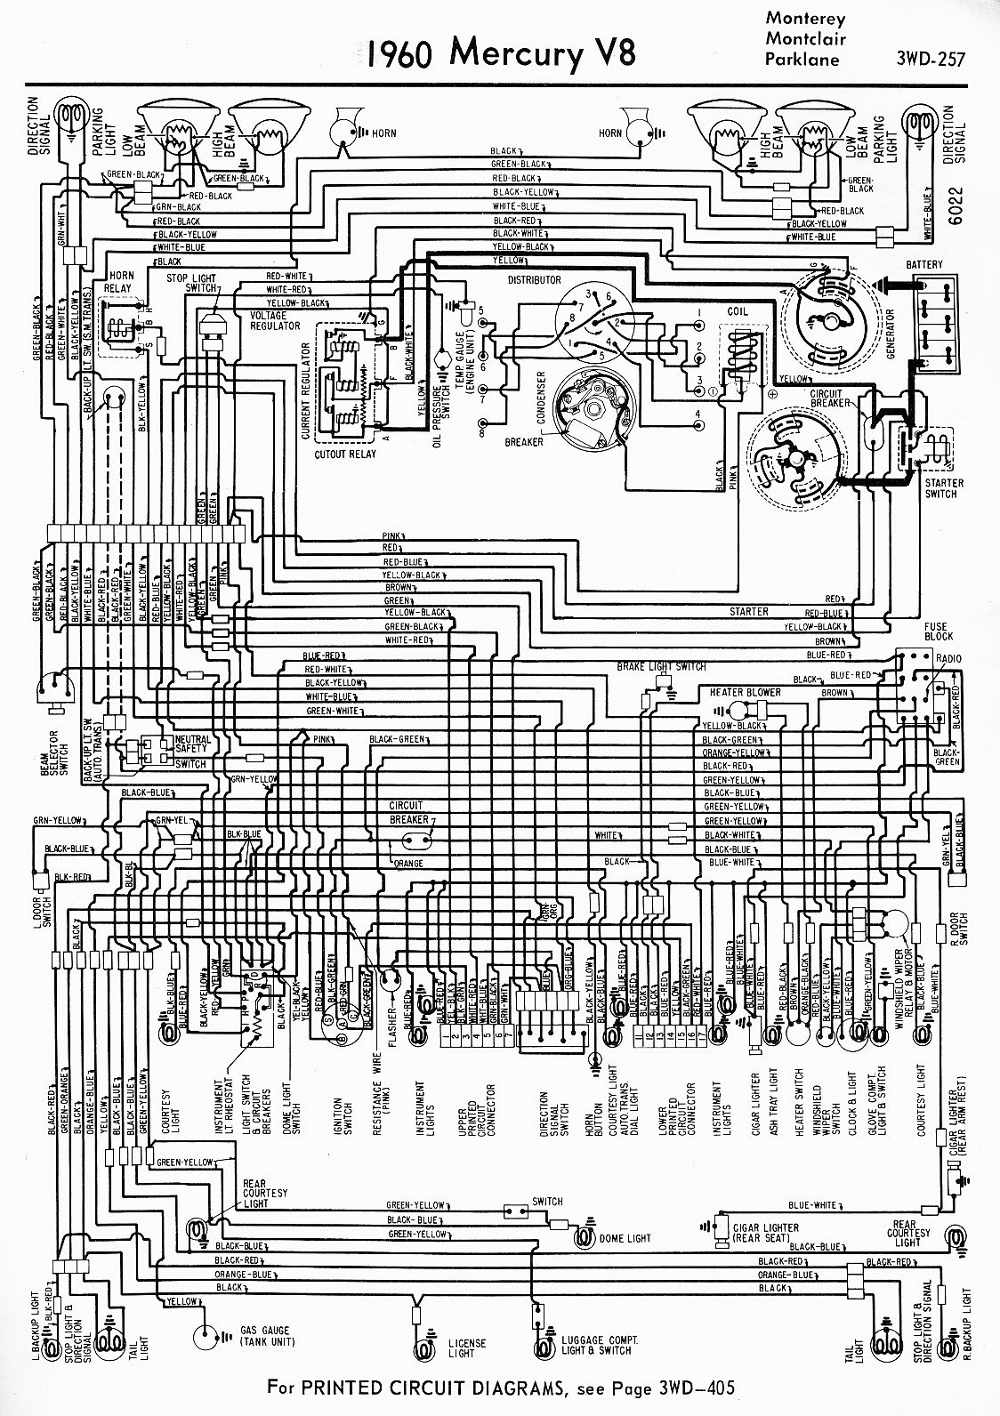 1955 Ford Wiring Schematic Electrical Diagram Schematics Manuals For Lights Diagrams Ignition Switch 1954 Mercury